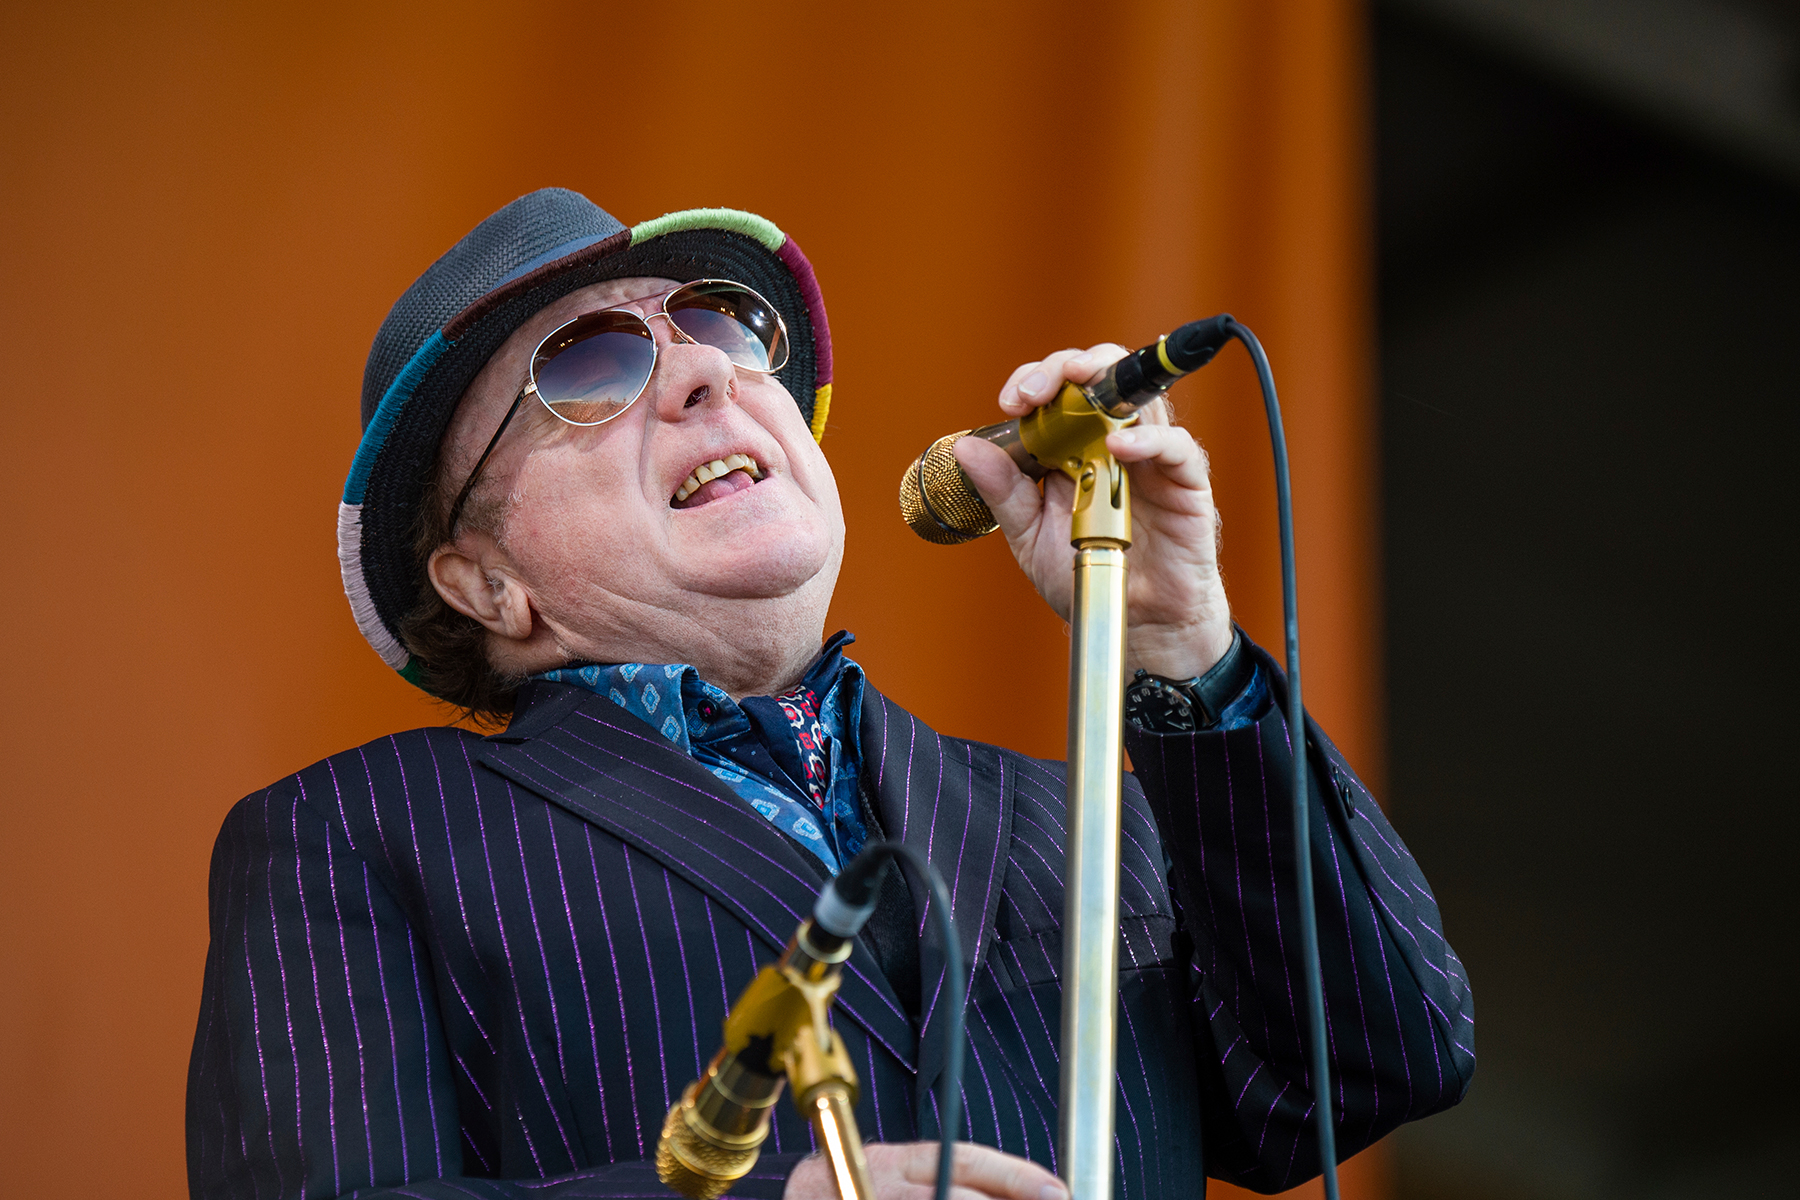 rollingstone.com - Jon Blistein - Van Morrison Plots Legal Action Against Live Music Ban in Northern Ireland